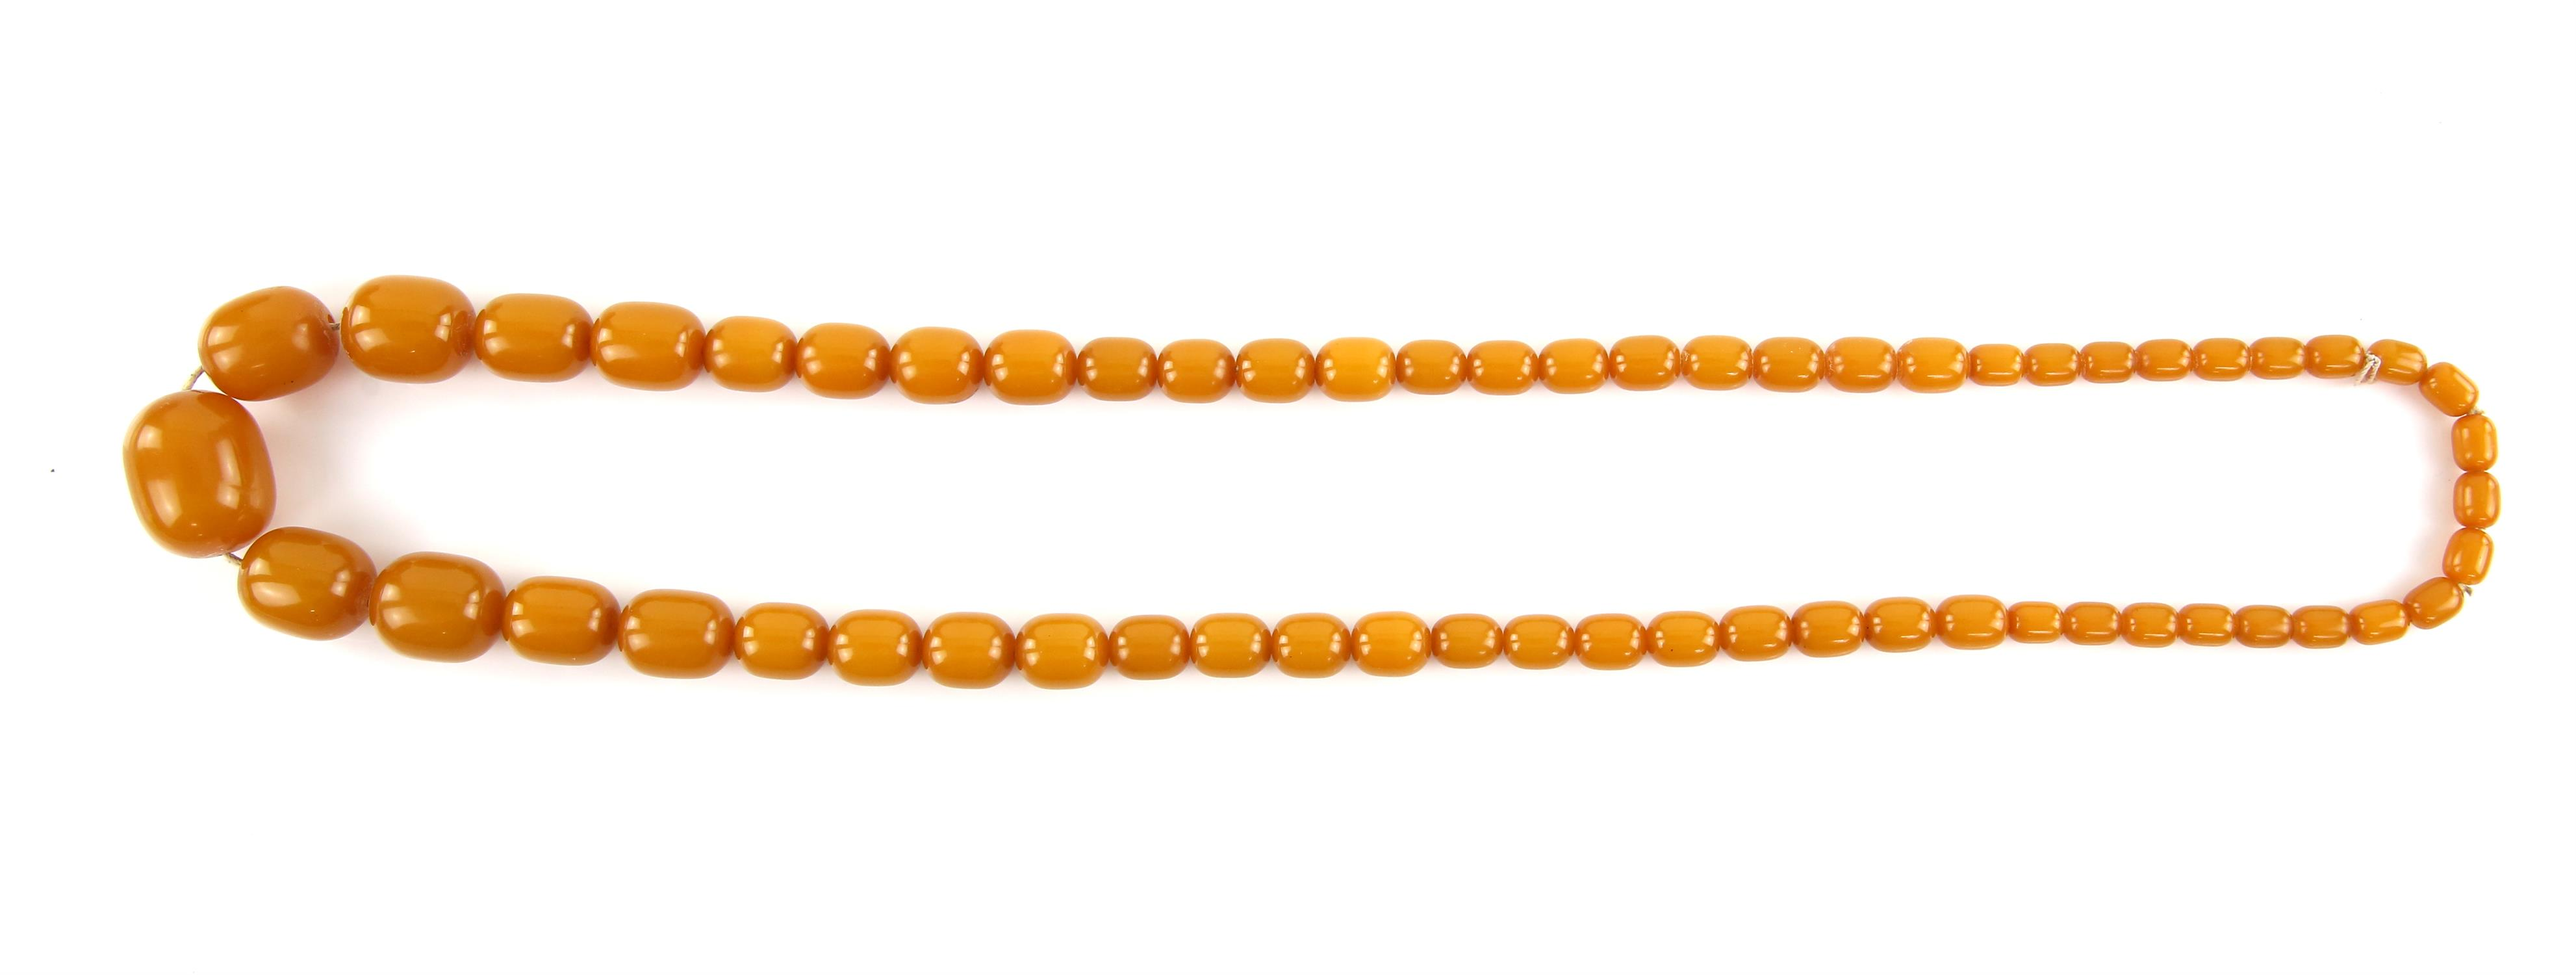 1920's plastic graduated bead necklace, the largest bead is 3x2.5cm and the length is approximately - Image 2 of 2